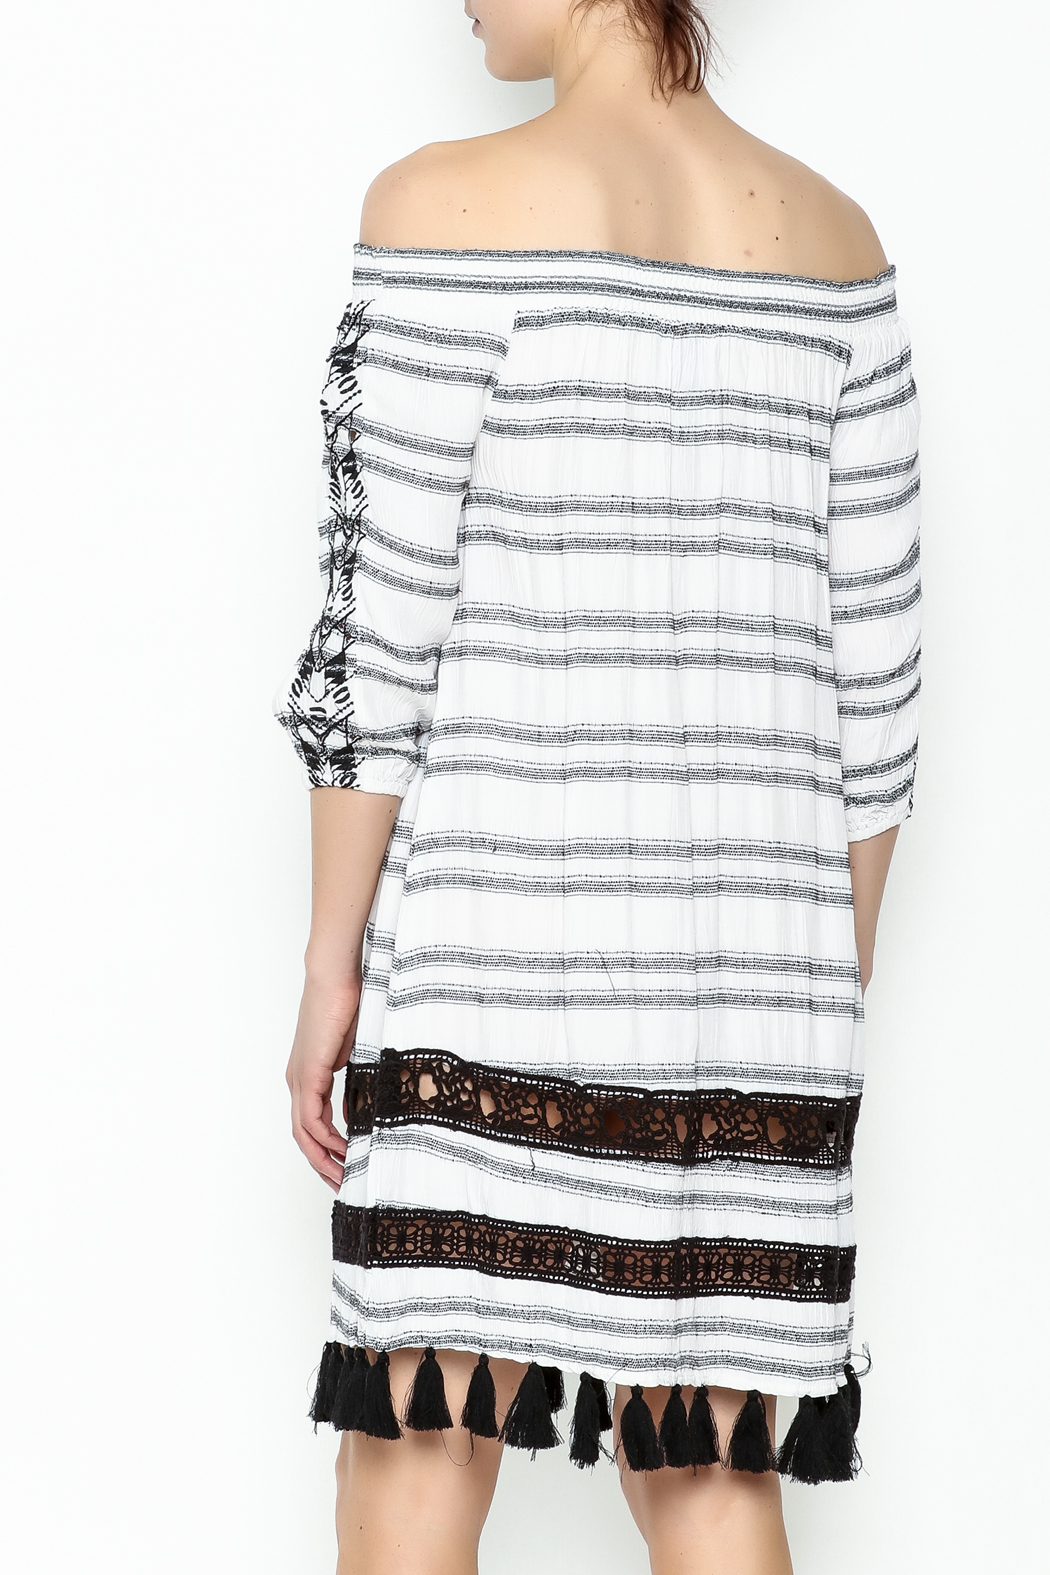 Muche et Muchette Striped Embroidered Dress - Back Cropped Image